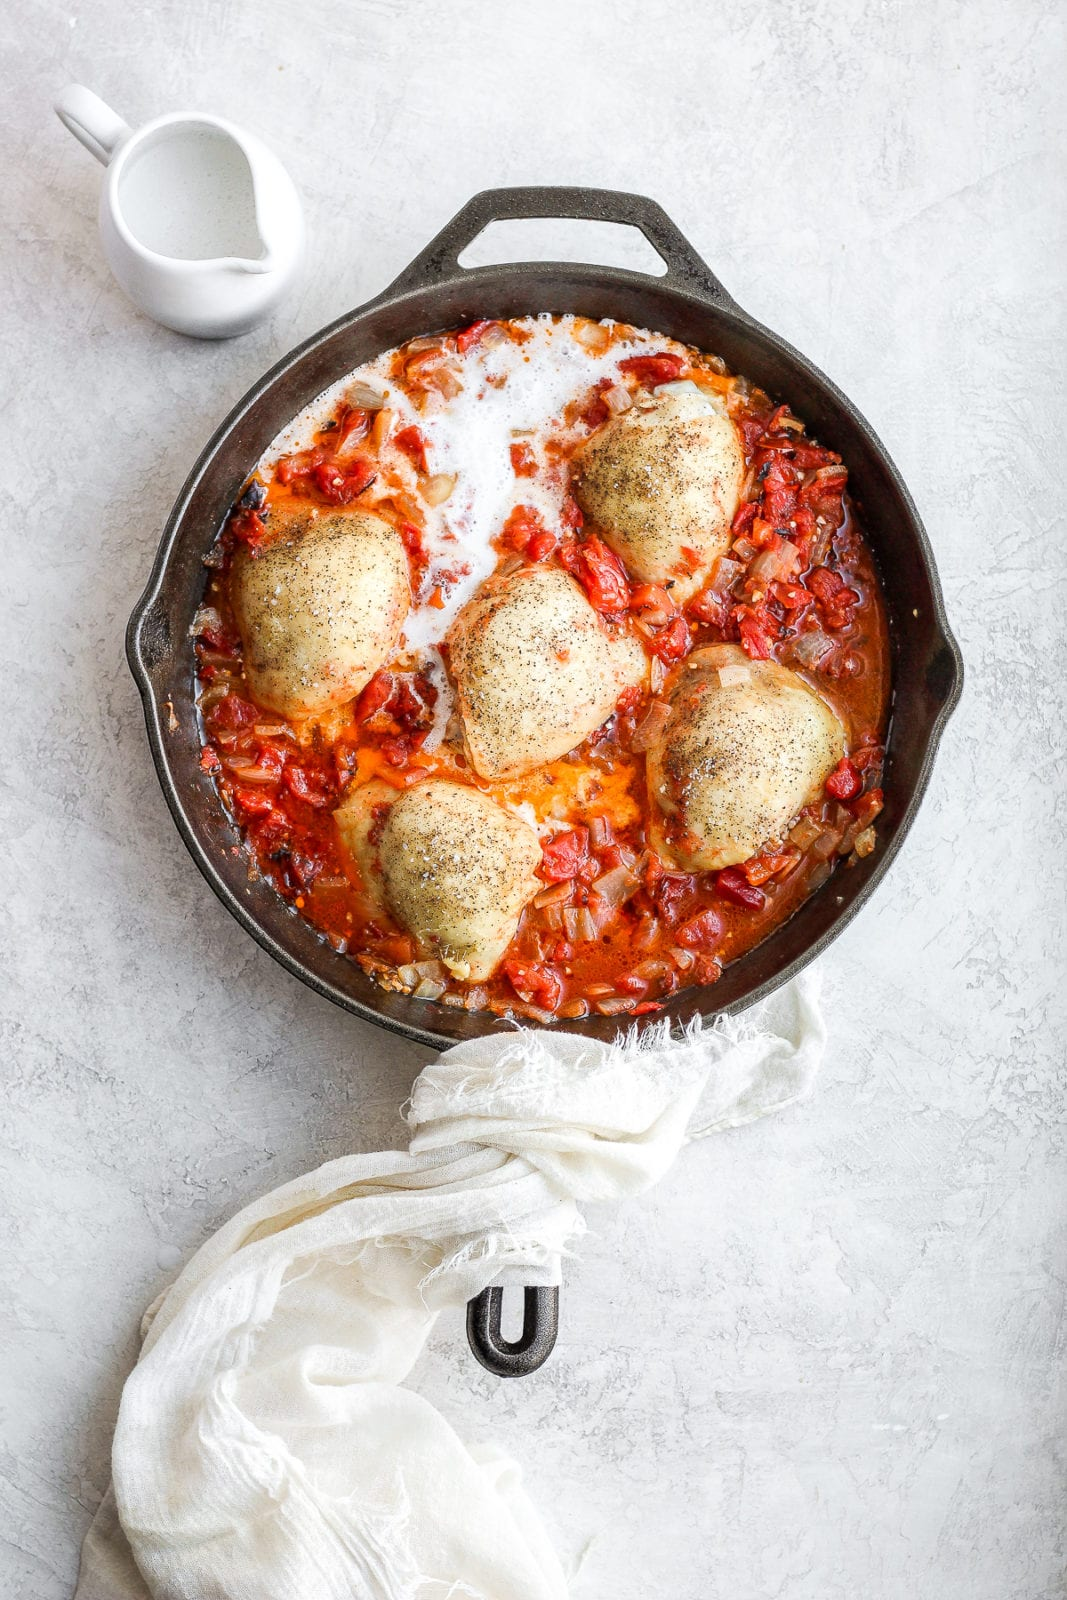 Dairy-Free Creamy Chicken Tomato Skillet - a simple, yet delicious easy weeknight dinner that is dairy-free and whole30 compliant! #whole30 #whole30recipes #paleo #dairyfreerecipes #easyweeknightdinner